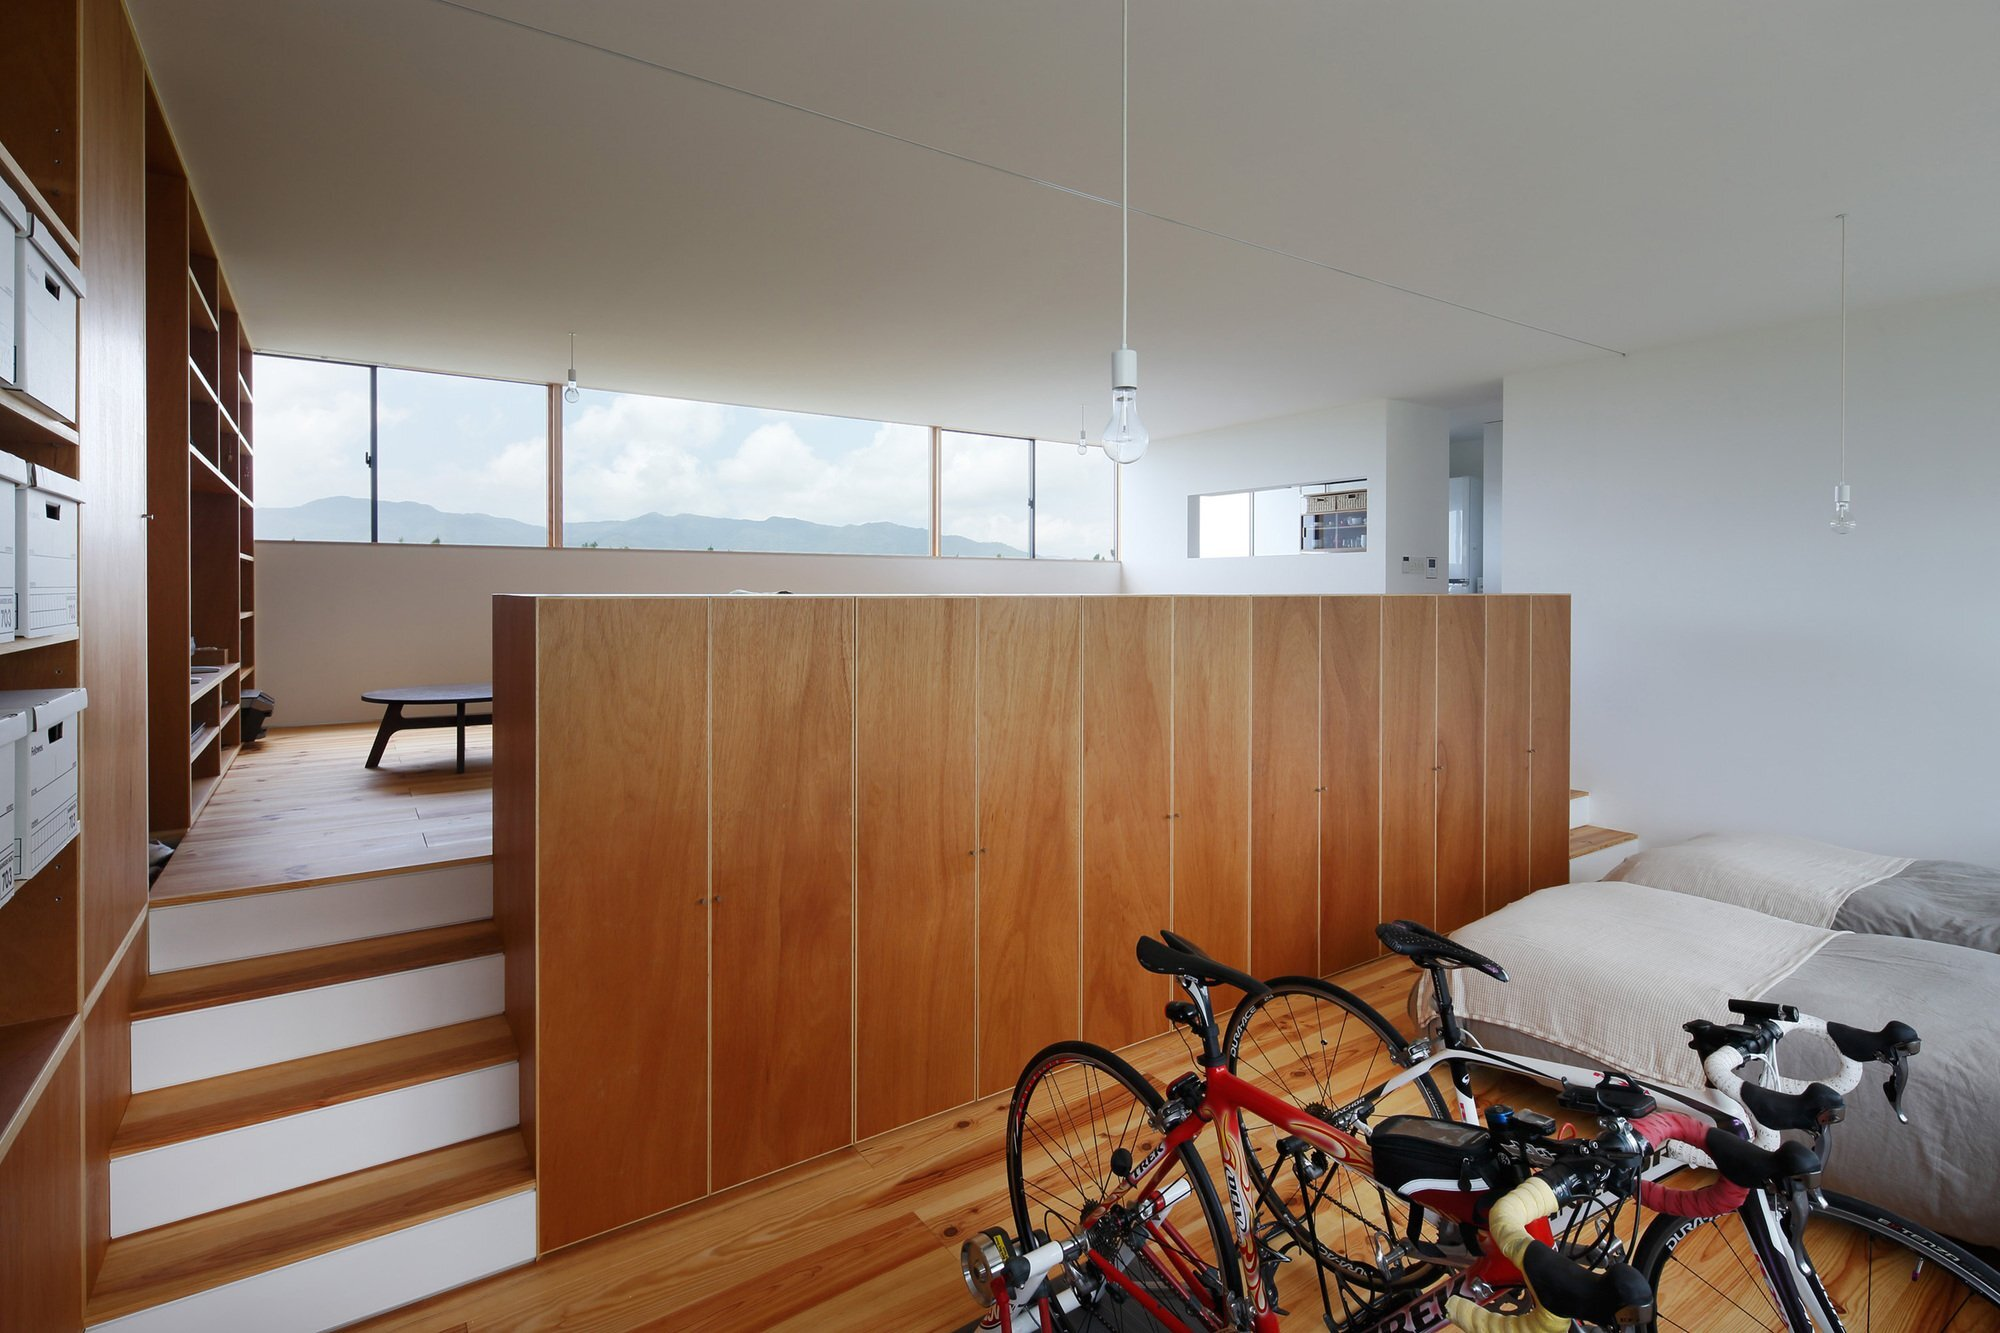 Gui House - Japanese House - Harunatsu-Arch - Shimane Japan - Bedroom - Humble Homes